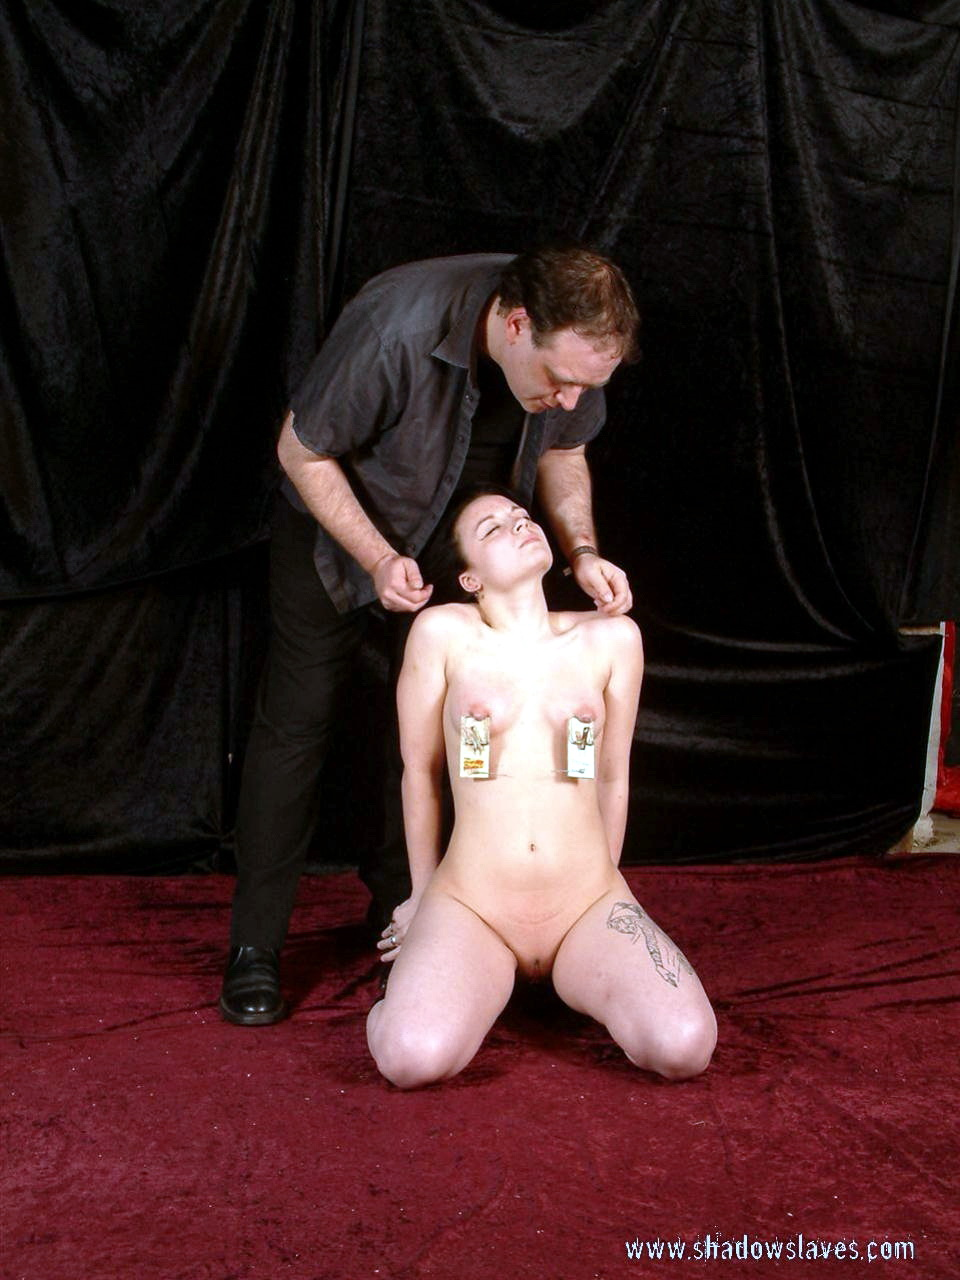 pussy Shadow slaves pixie